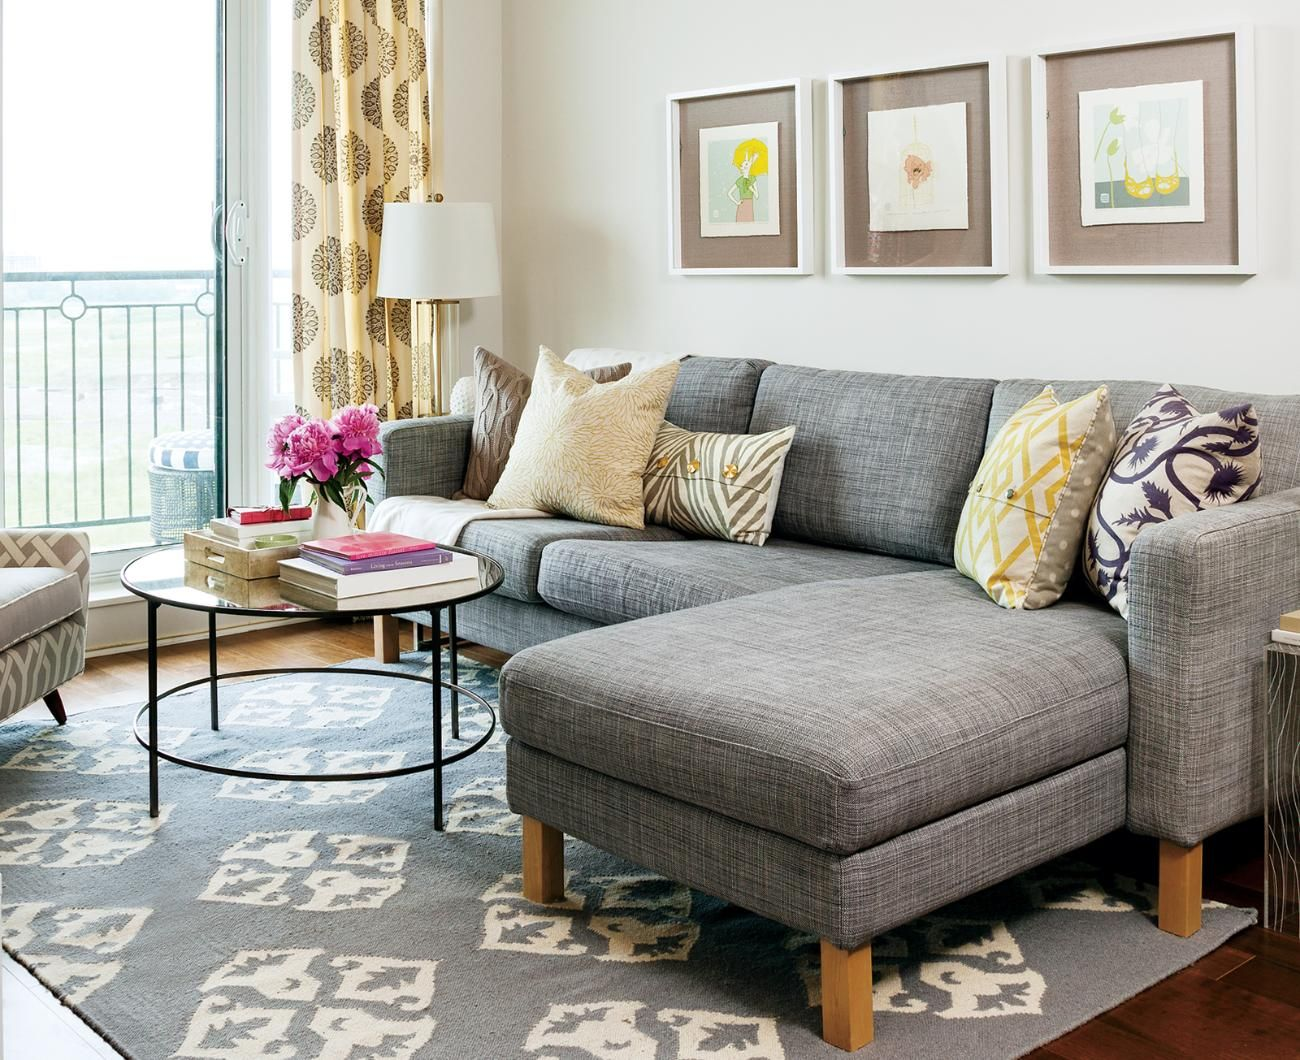 Gold and grey living roomu2014Gold and grey